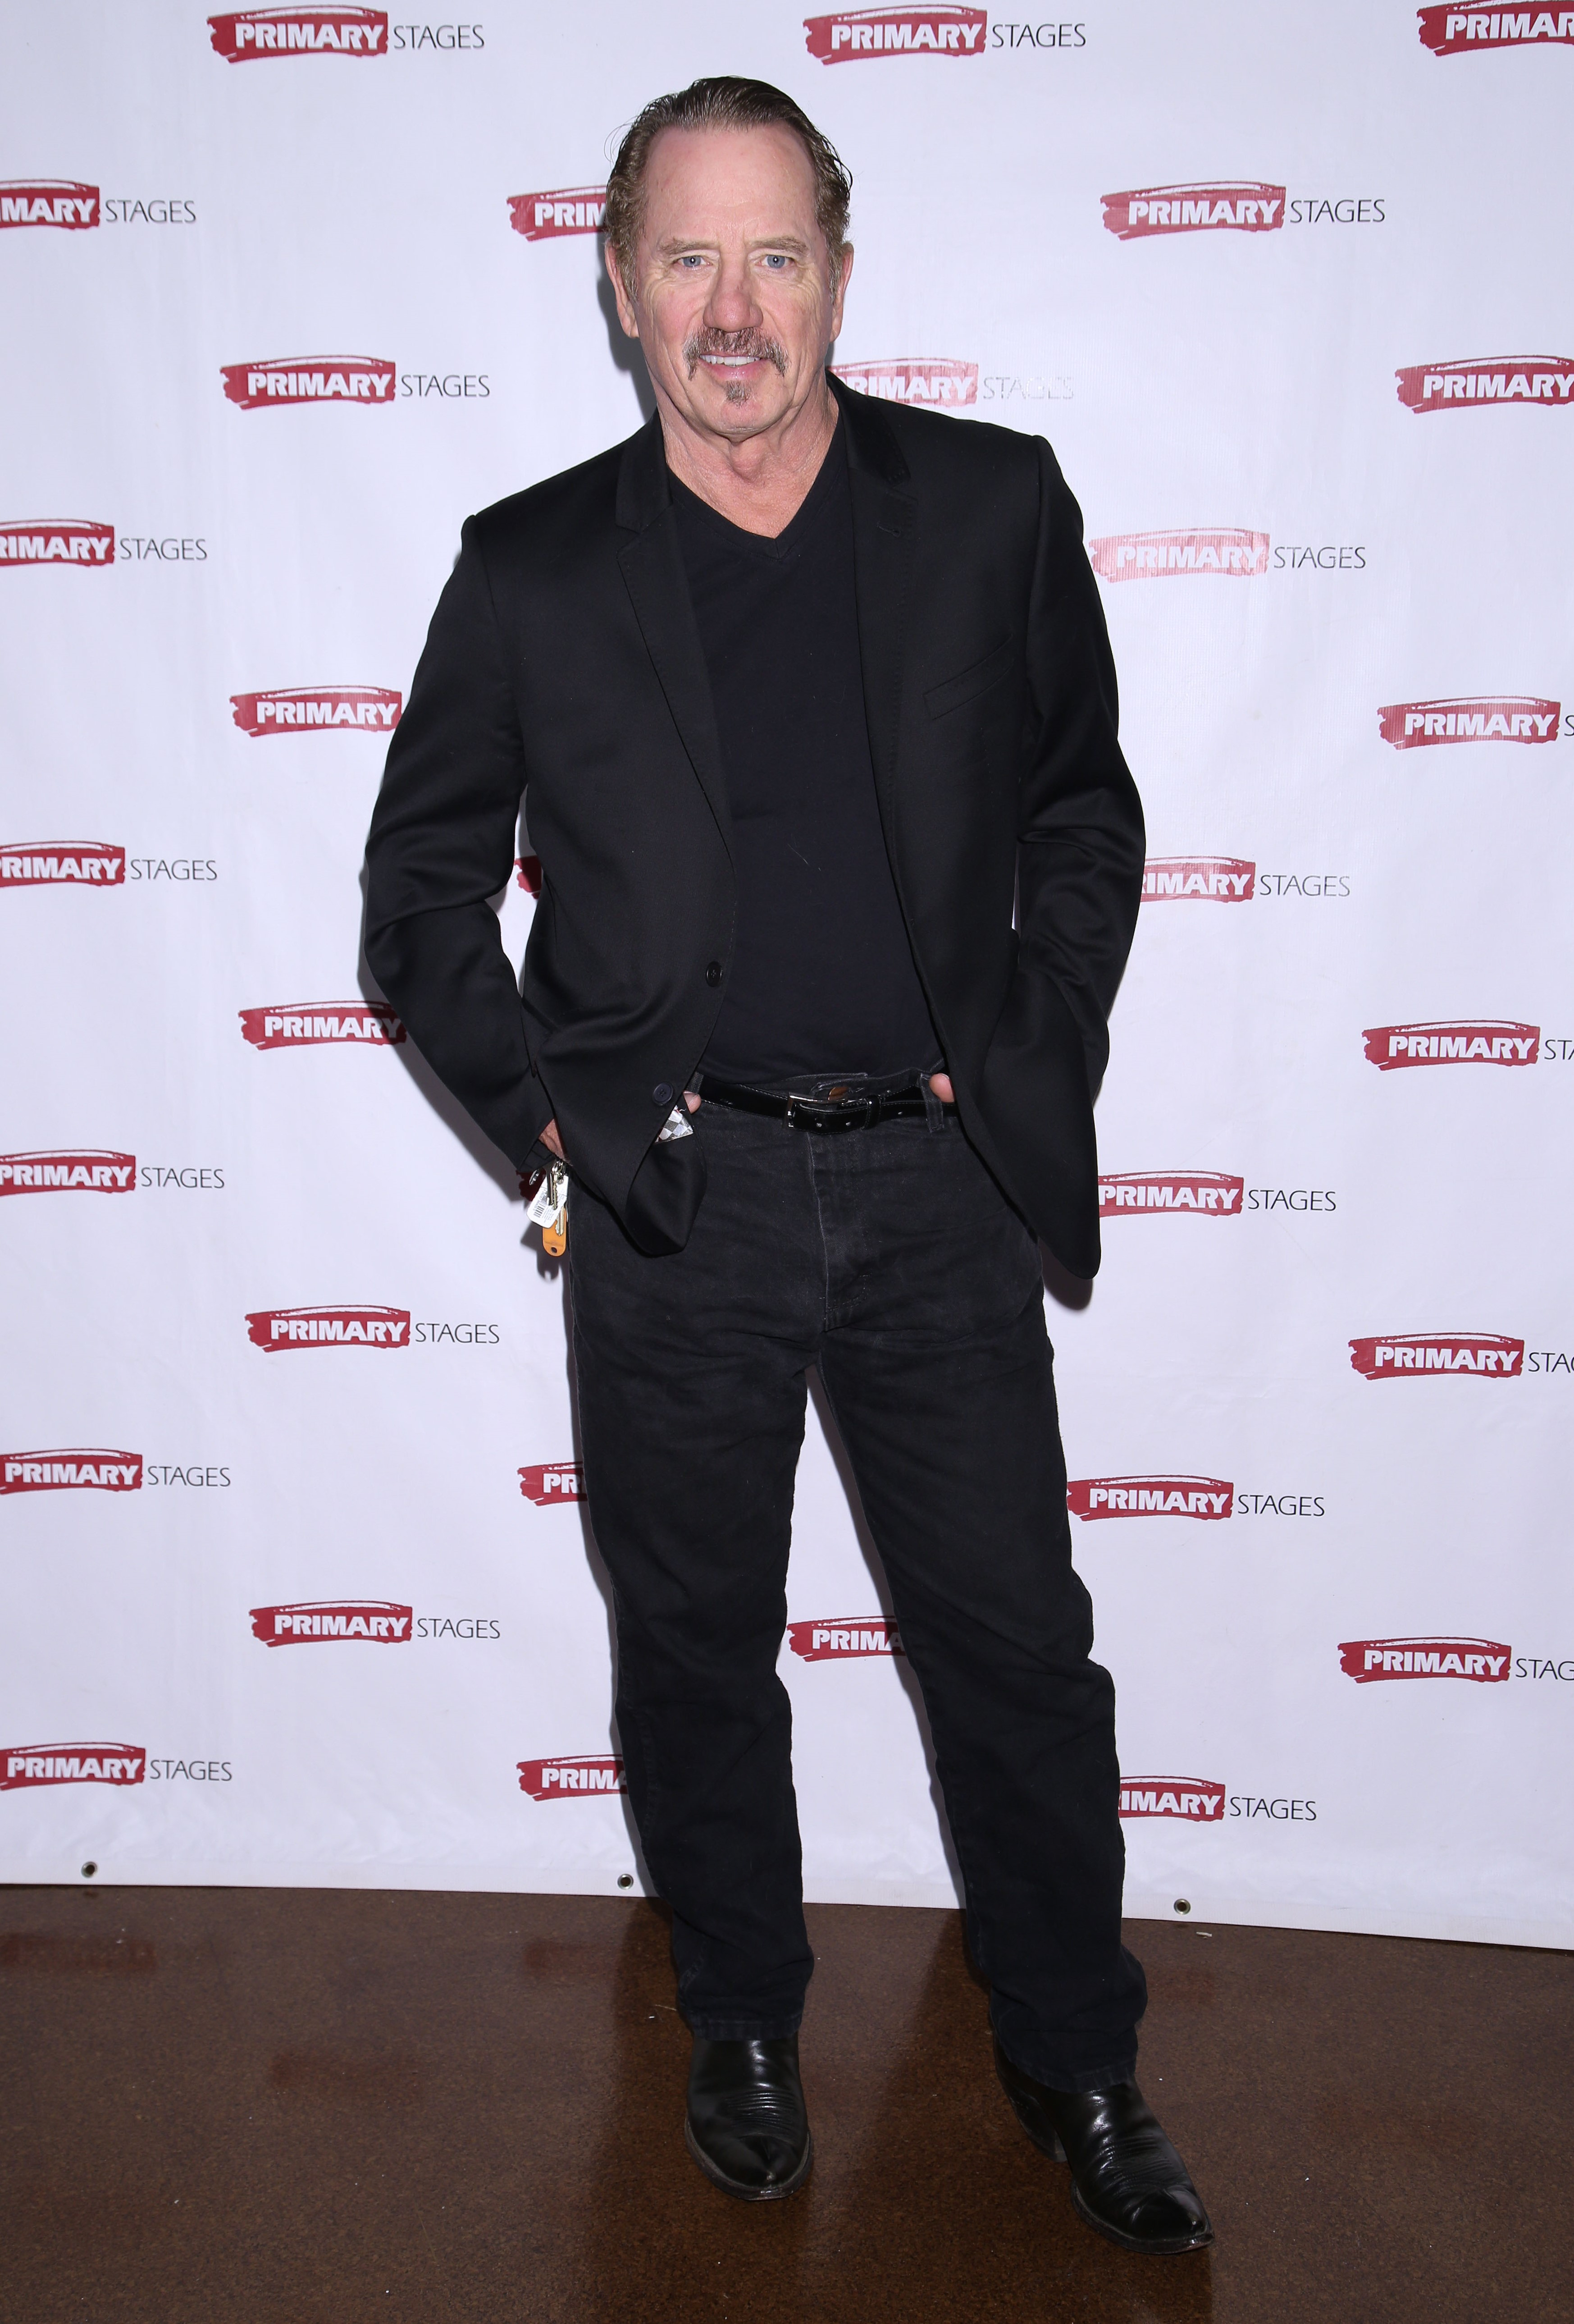 2015 Primary Stages Gala held at 583 Park Avenue - Arrivals.  Featuring: Tom Wopat Where: New York City, New York, United States When: 17 Nov 2015 Credit: Joseph Marzullo/WENN.com